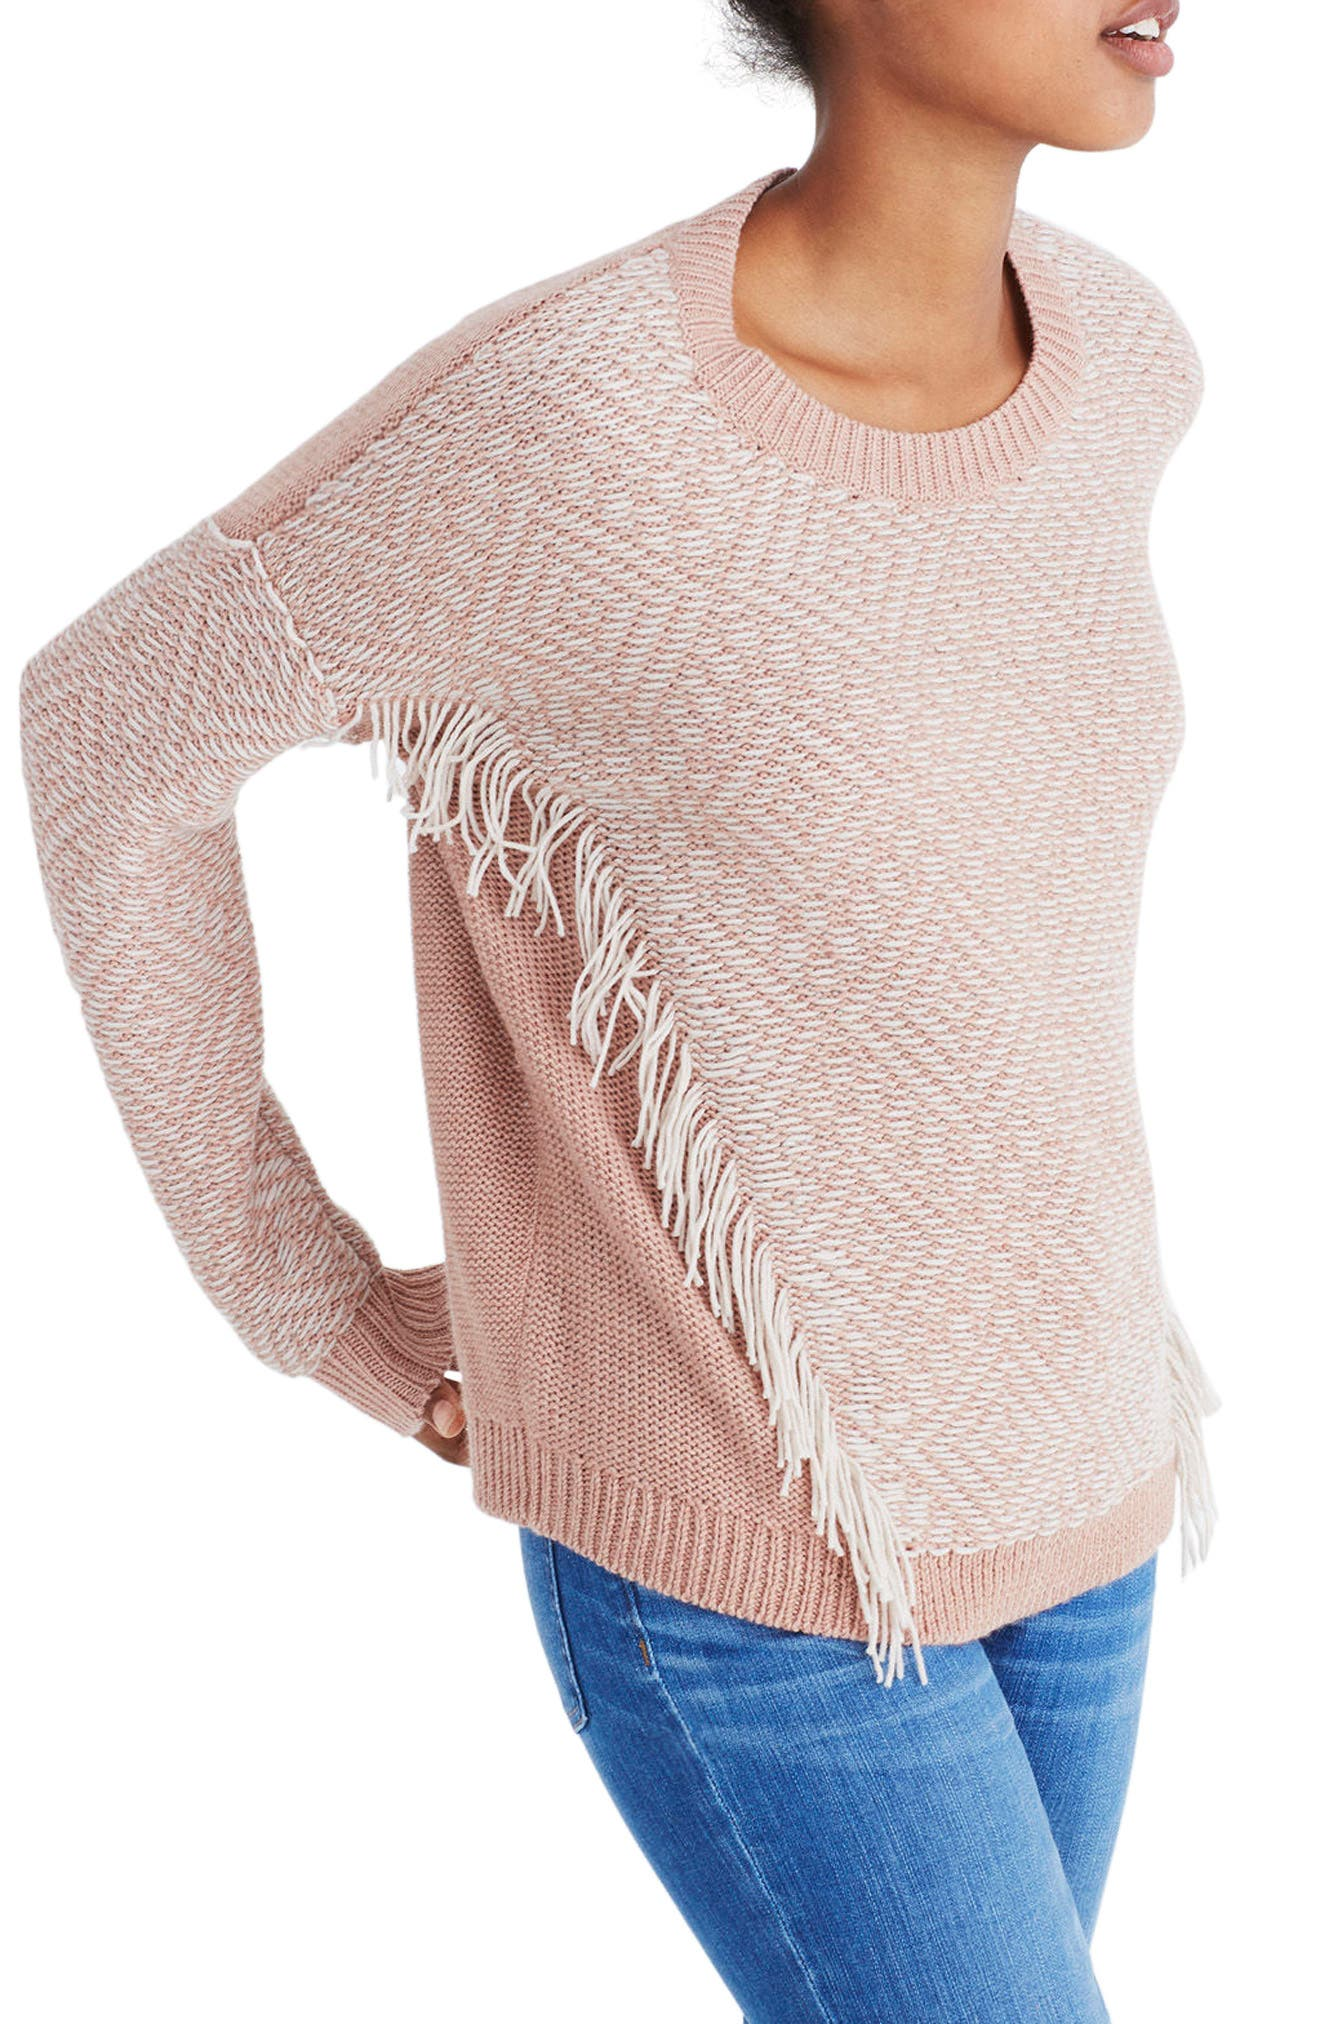 Reverse Diamond Pullover Sweater,                             Main thumbnail 1, color,                             Heather Voile